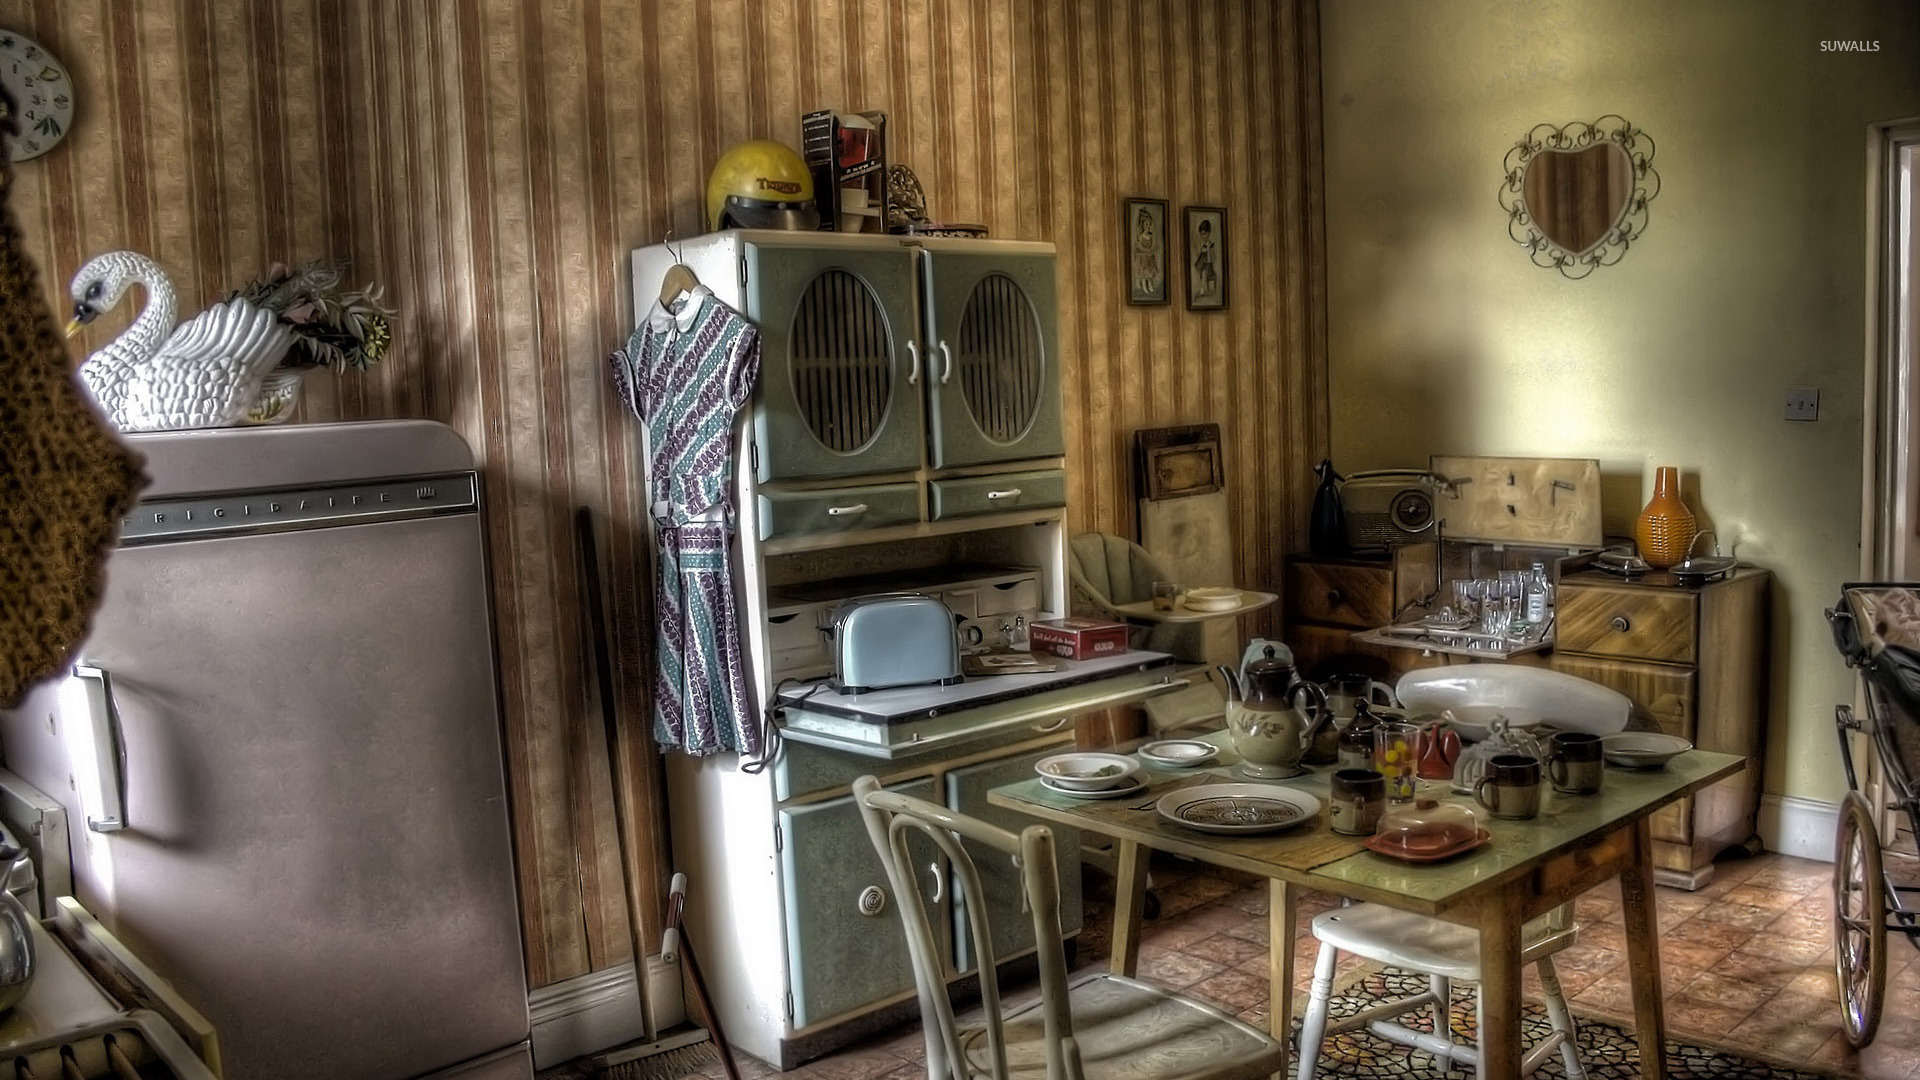 Free Country Fall Wallpaper Vintage Kitchen 2 Wallpaper Photography Wallpapers